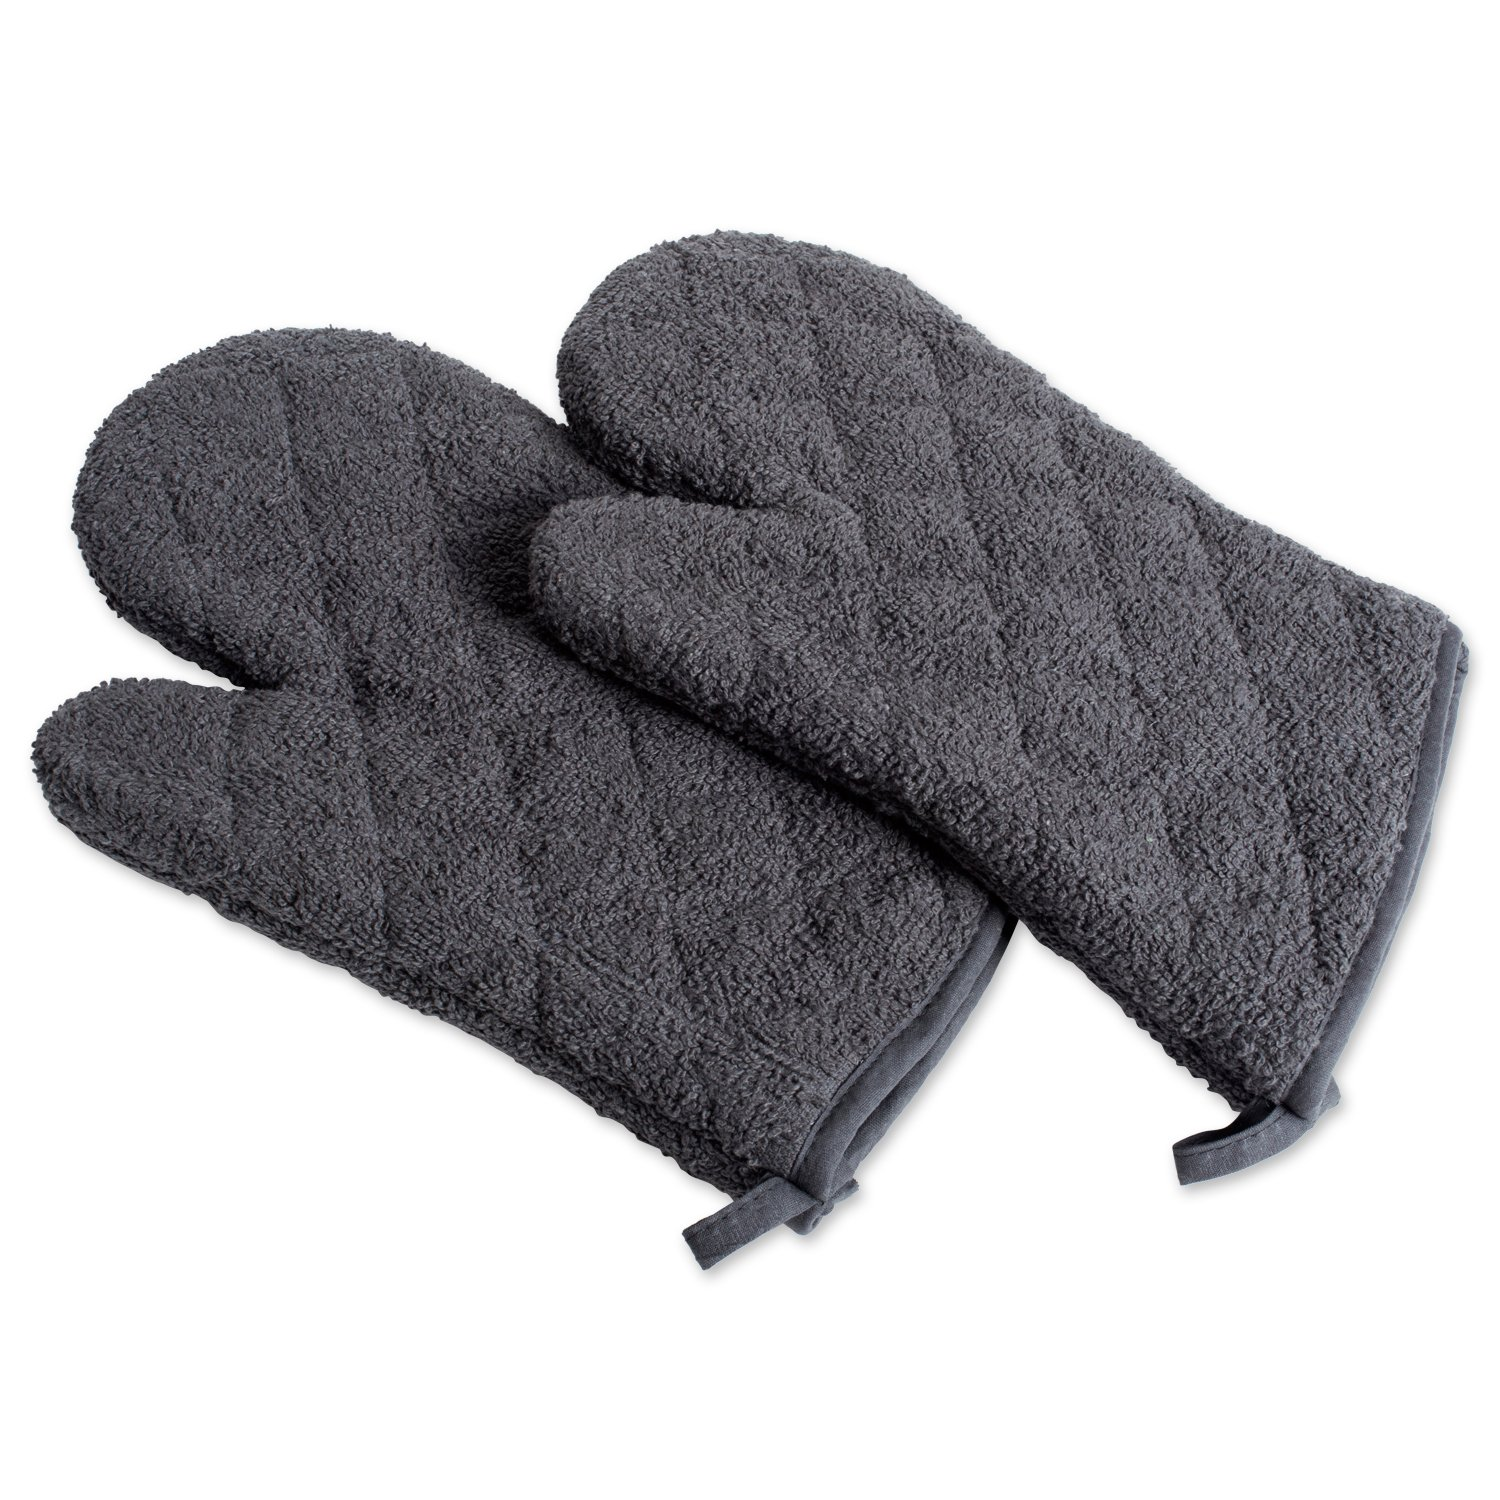 DII 100% Cotton, Terry Oven Mitts 7 x 13, Heat Resistant, Machine Washable for Everyday Kitchen Basic, Set of 2, Ovenmitt, Mineral Gray, 2 Piece